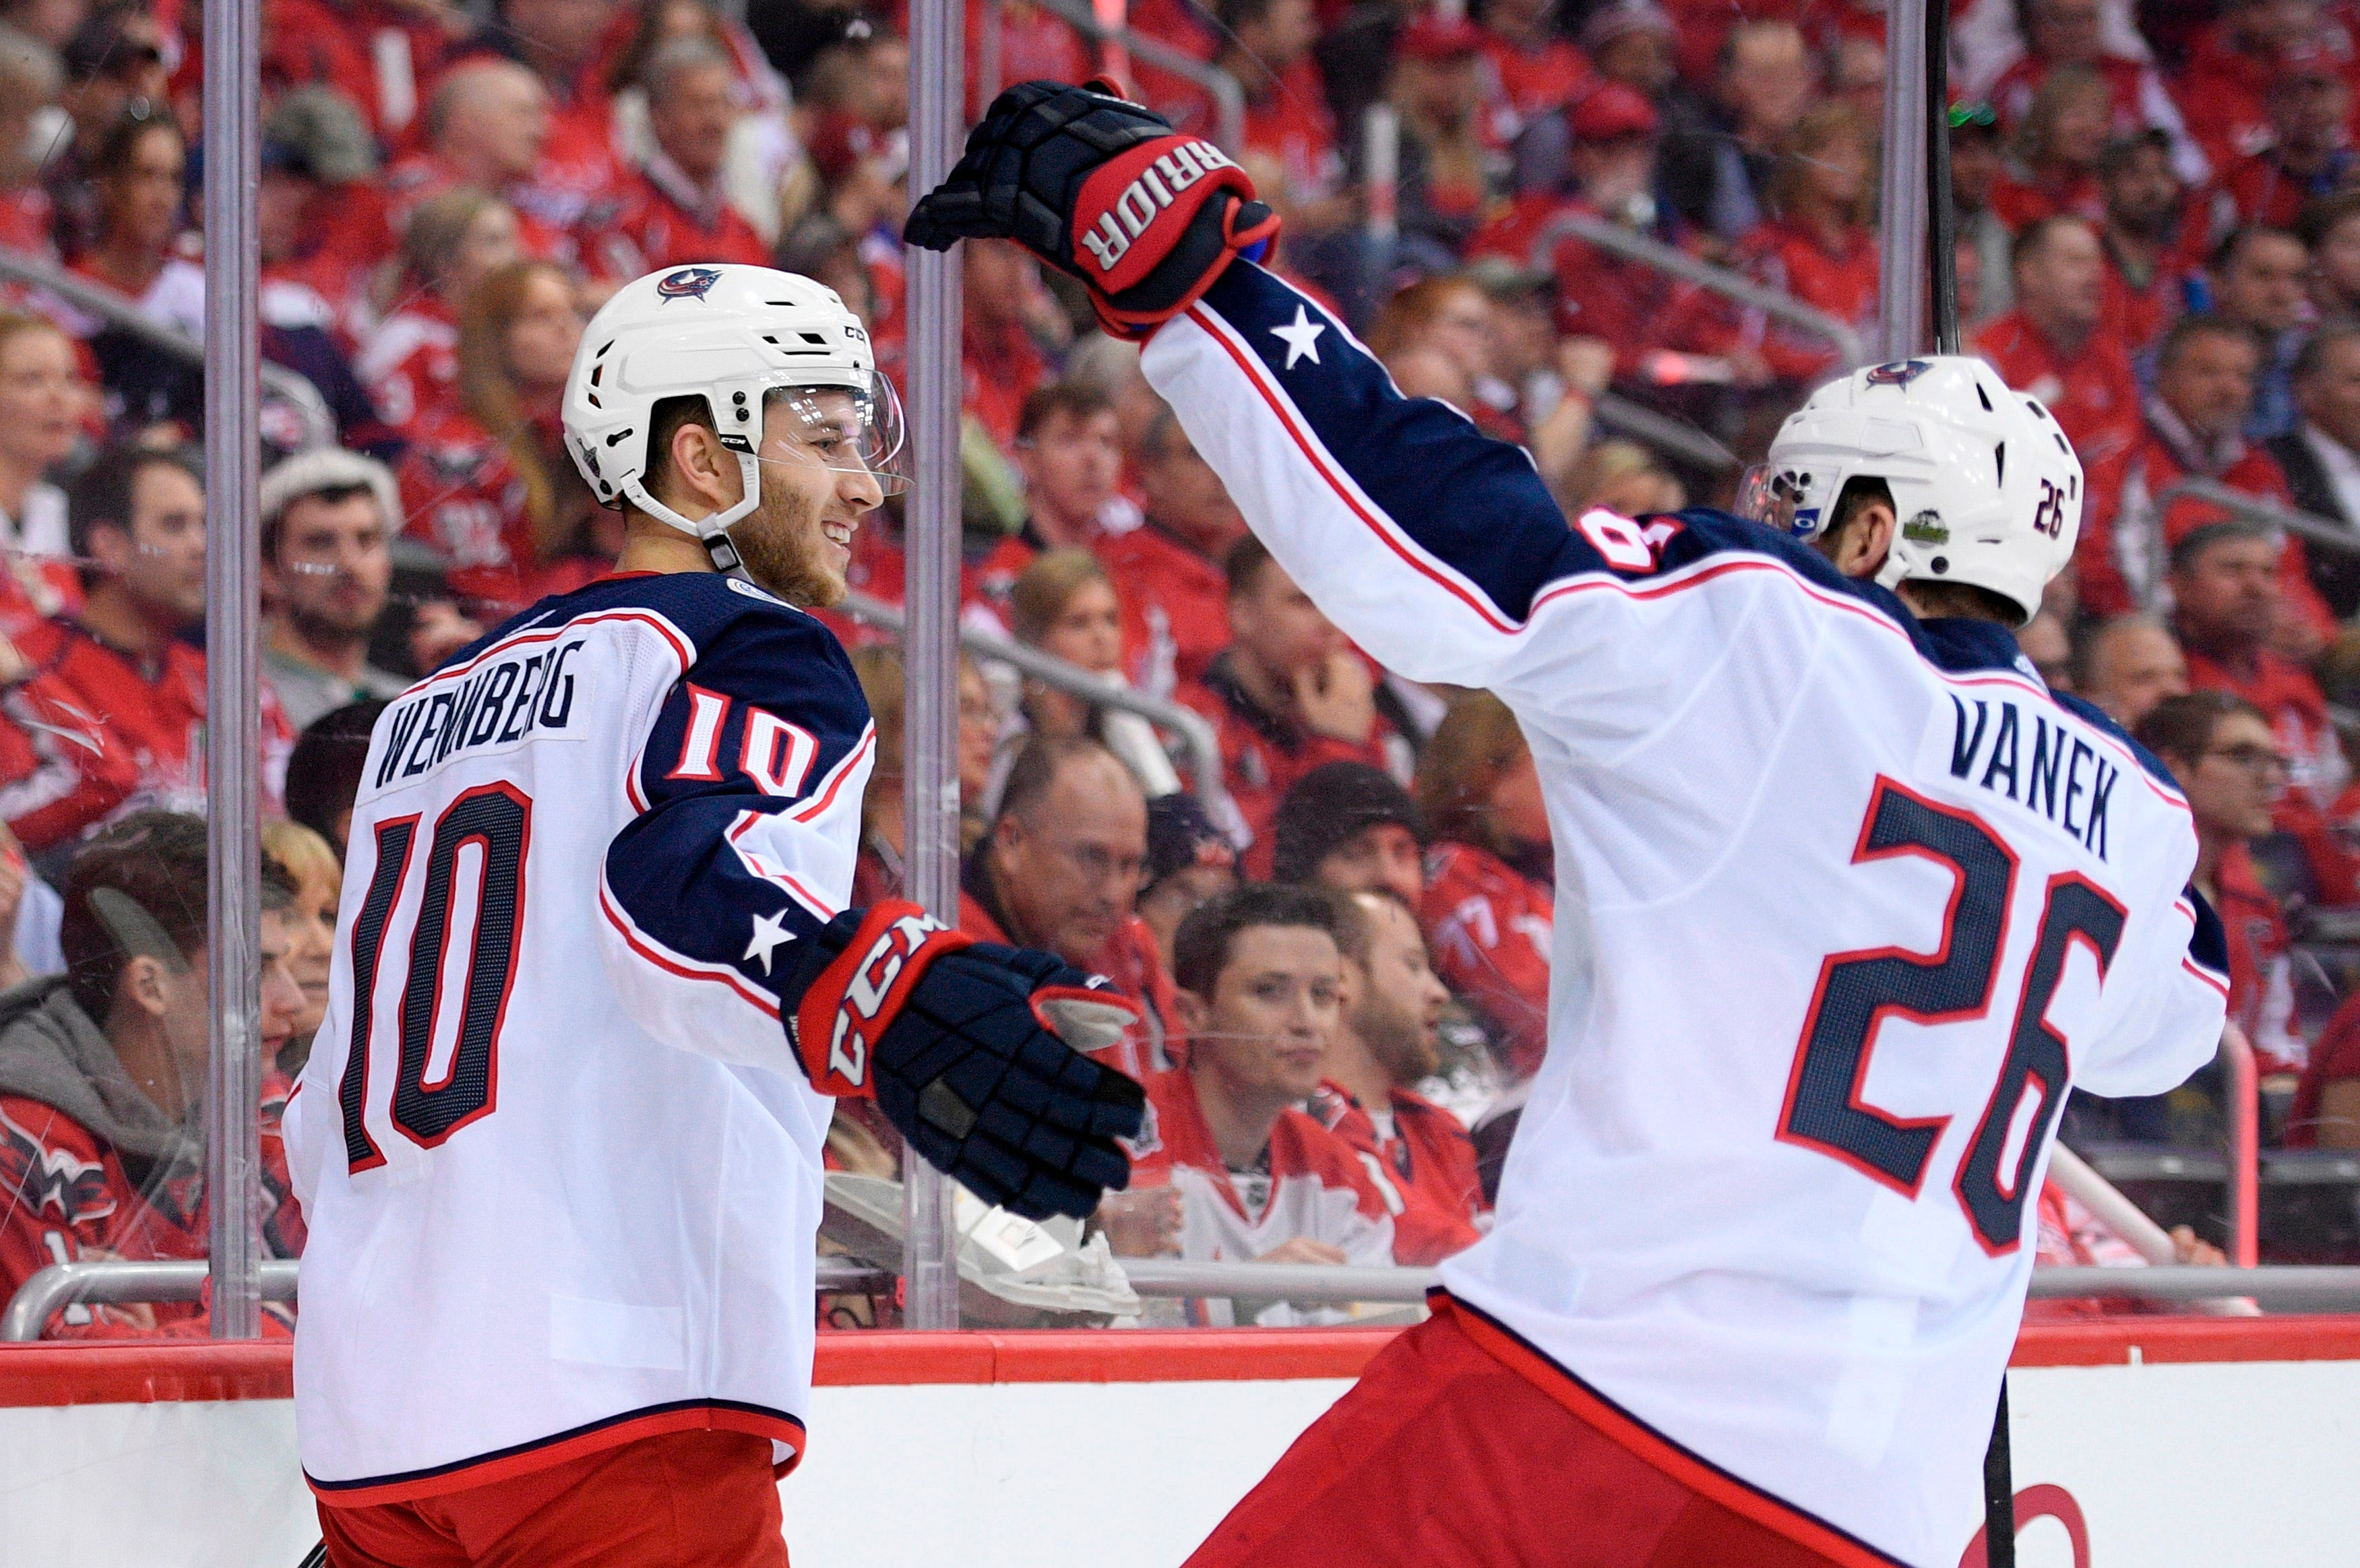 Wennberg back for Blue Jackets in Game 5 against Capitals